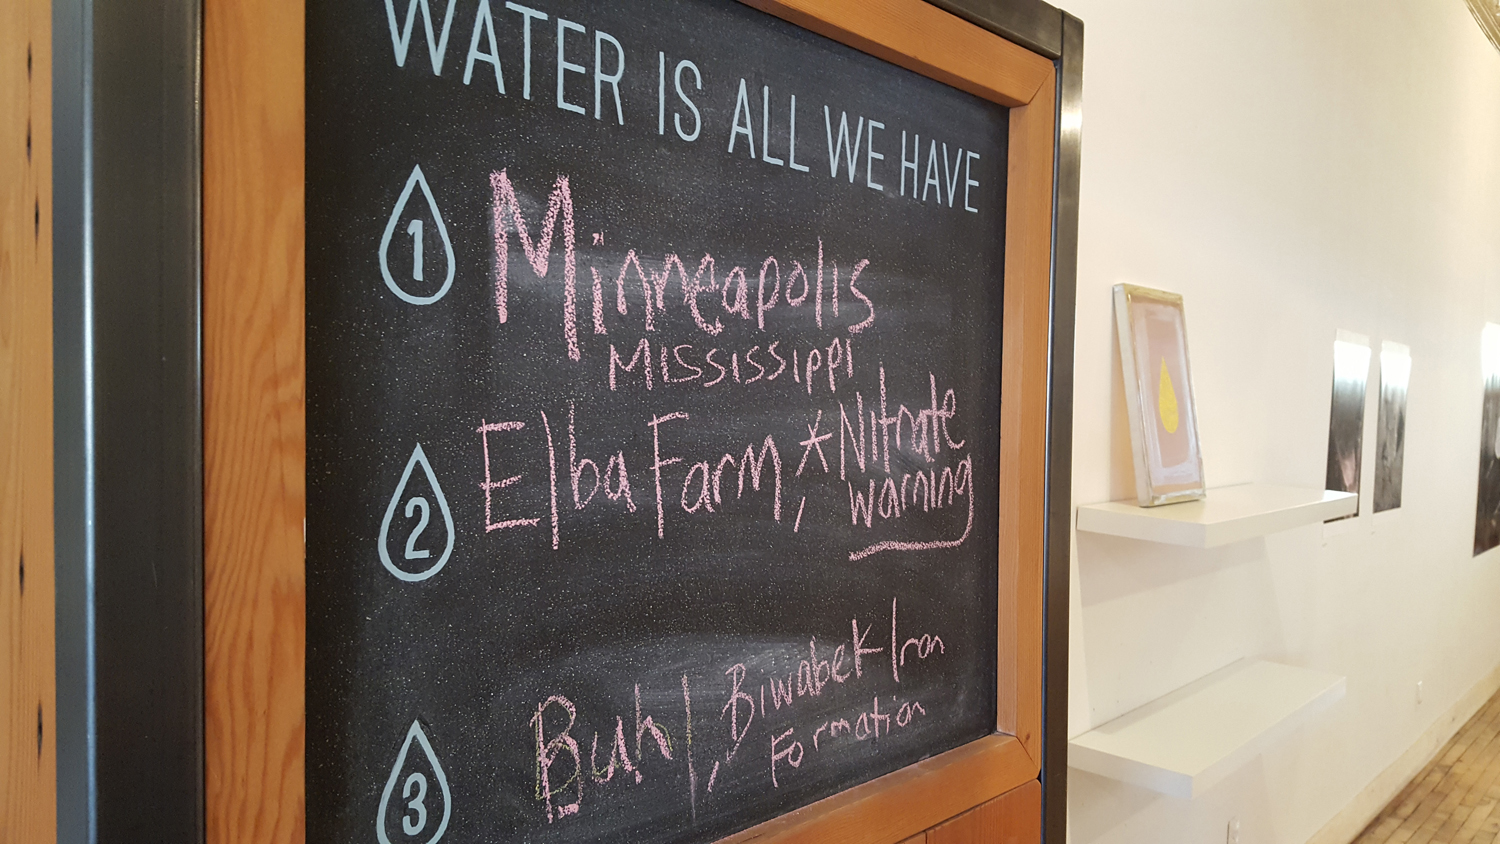 A chalk board shows notes about water-related issues. Inside the Water Bar in Minneapolis, Minnesota, visitors talk about how water issues affect their lives.